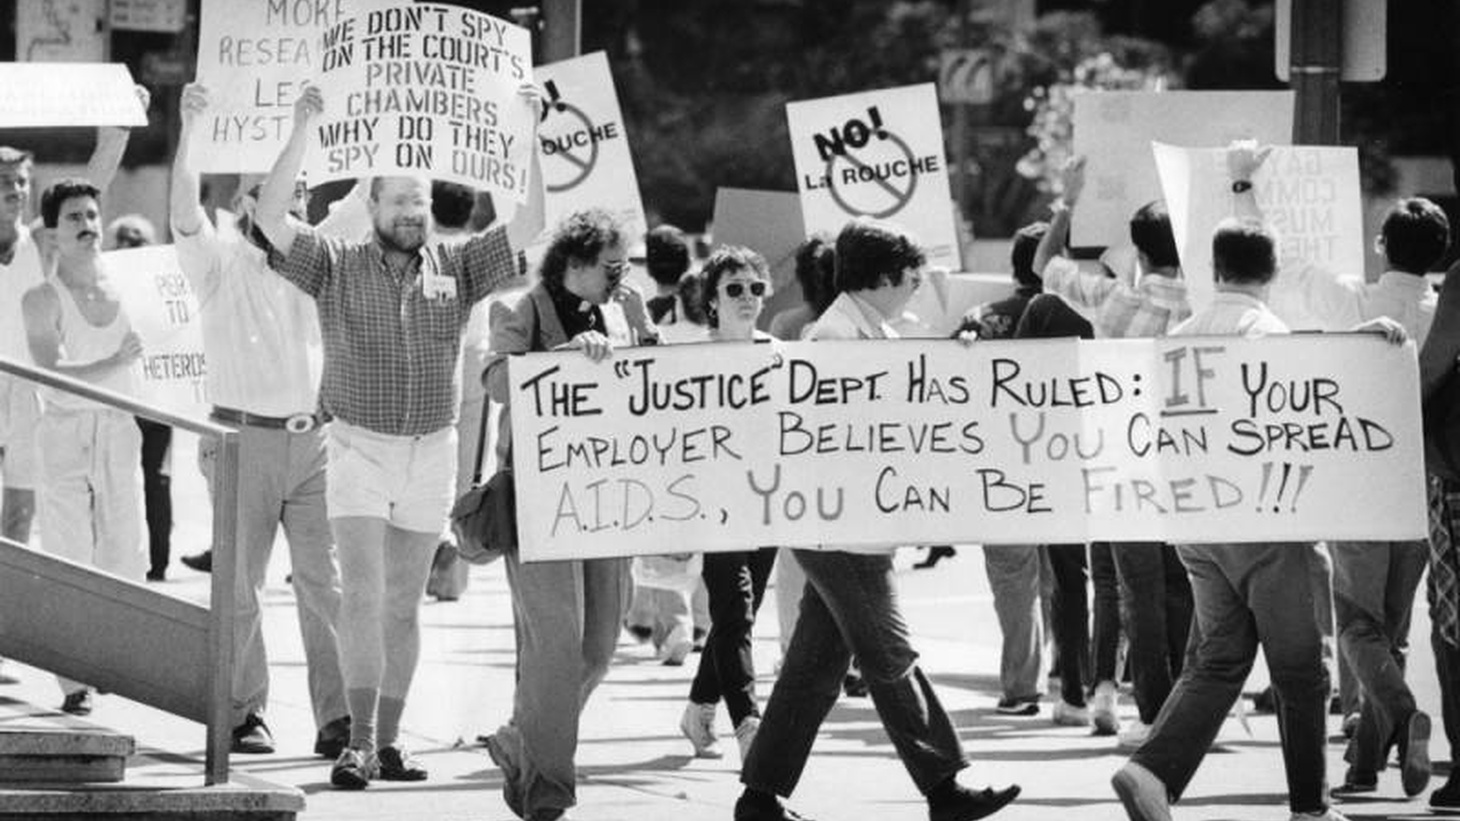 "July 2, 1986 - A protest at the Federal Building in Los Angeles, Calif. Some signs read, ""The 'Justice' Dept. has ruled: If your employer believes you can spread A.I.D.S., You can be fired!!!"""